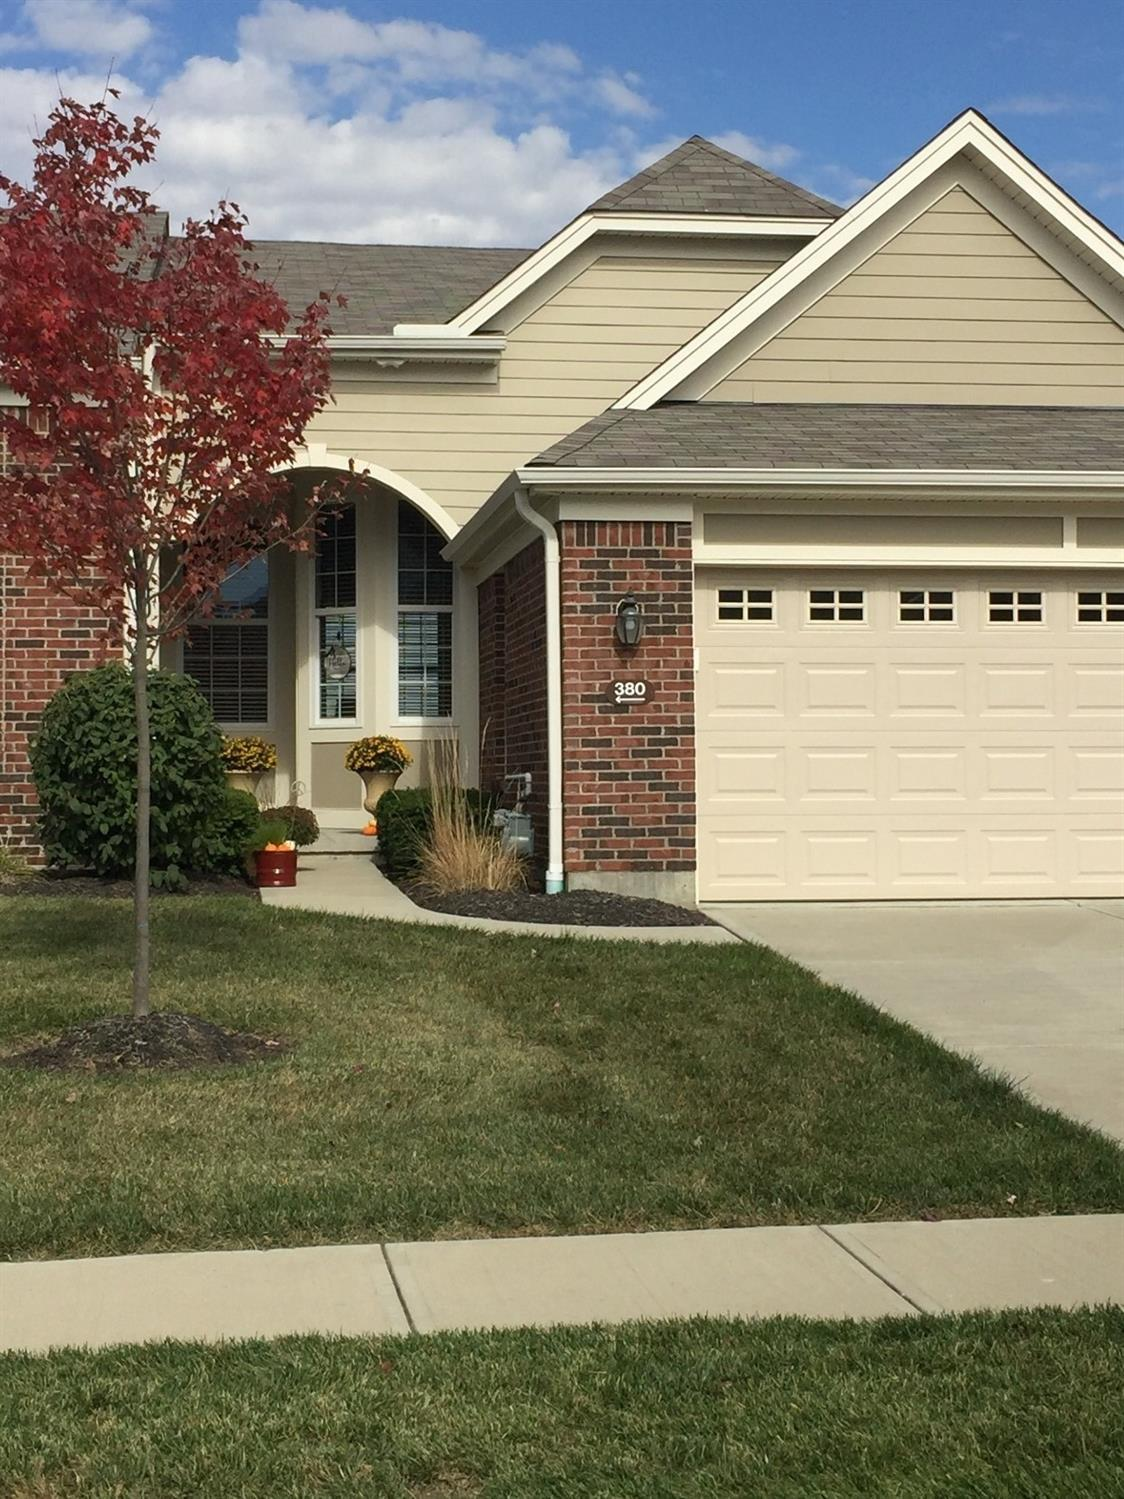 Photo 2 for 380 Turtle Creek Dr Loveland, OH 45140